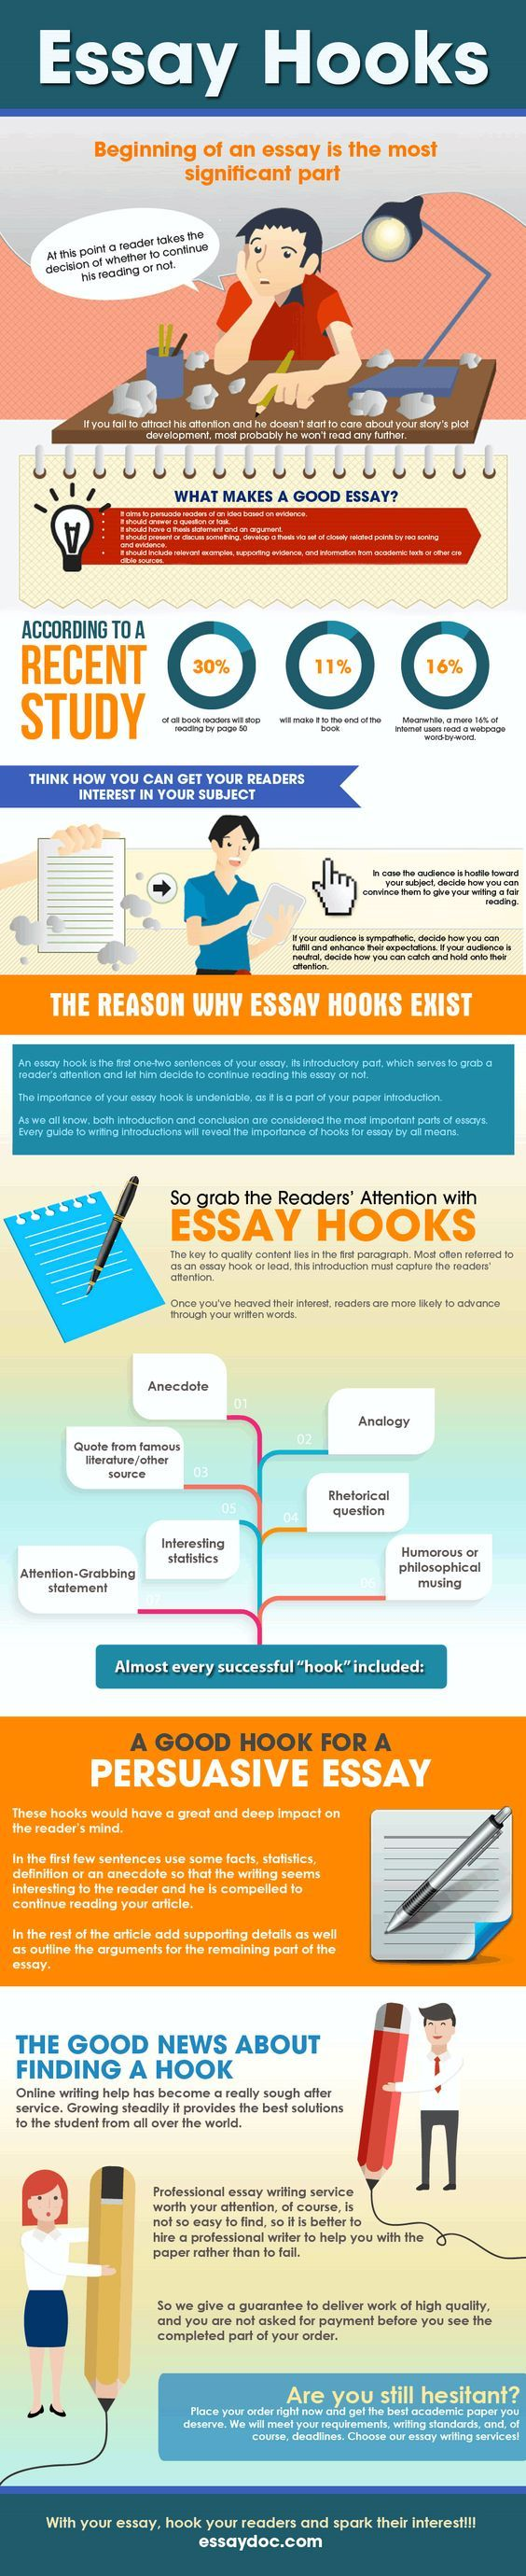 best ideas about how to write essay english a comparative essay is writing that requires enough similarities as well as differences between the selected topics to make meaningful discussions possible